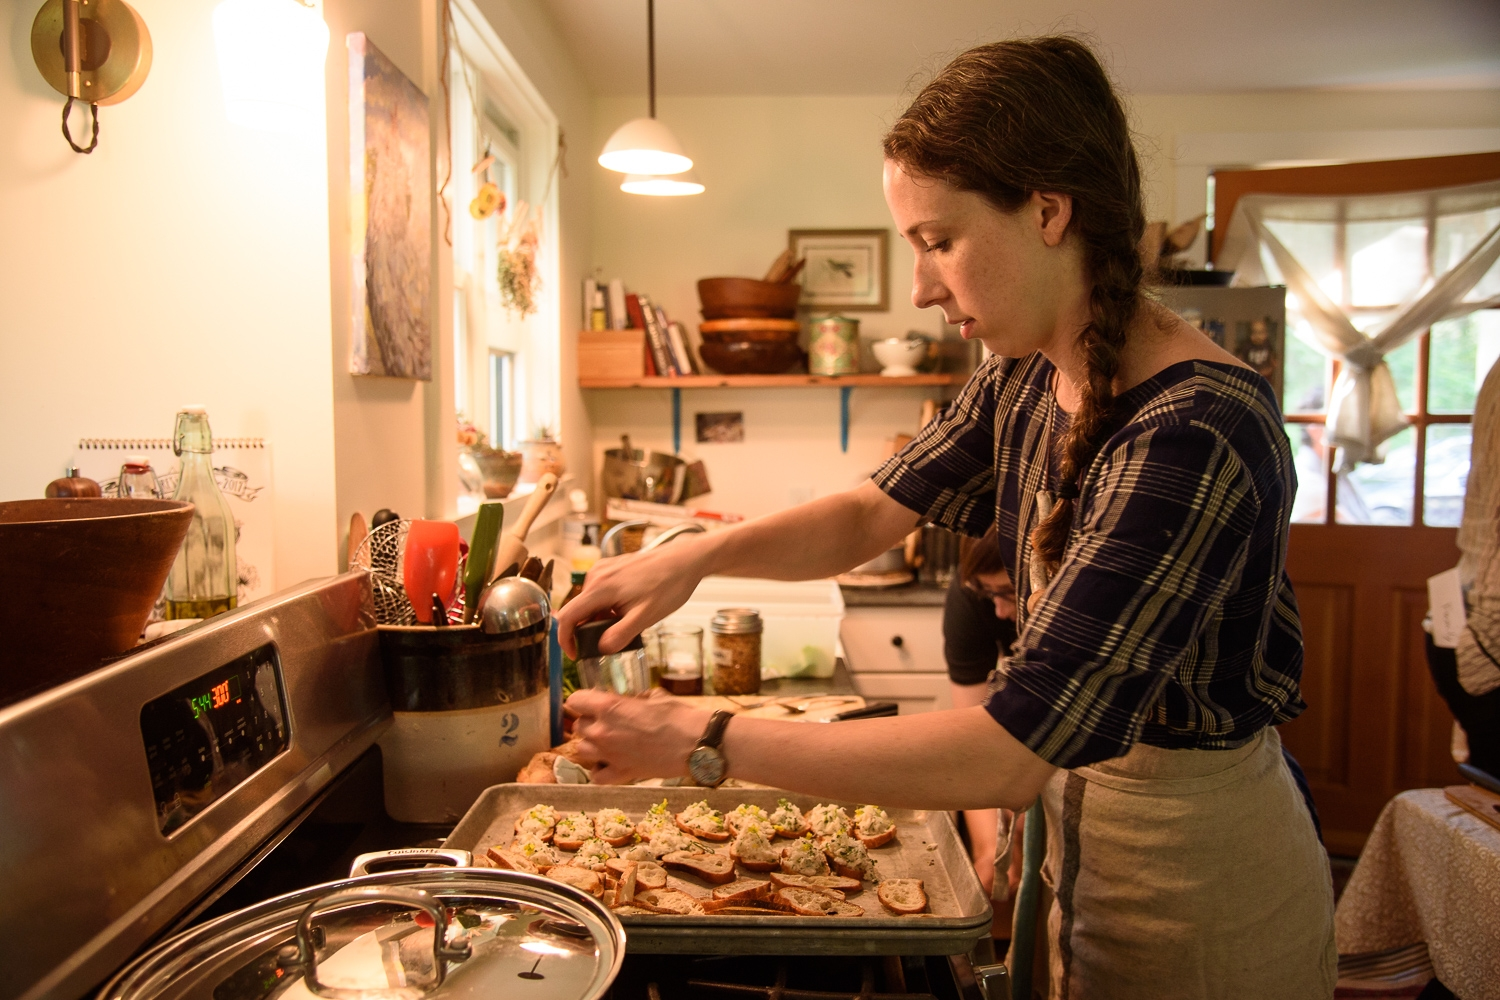 Chef Sheila Jarnes preps dinner. (Photograph by Shawn Henry)